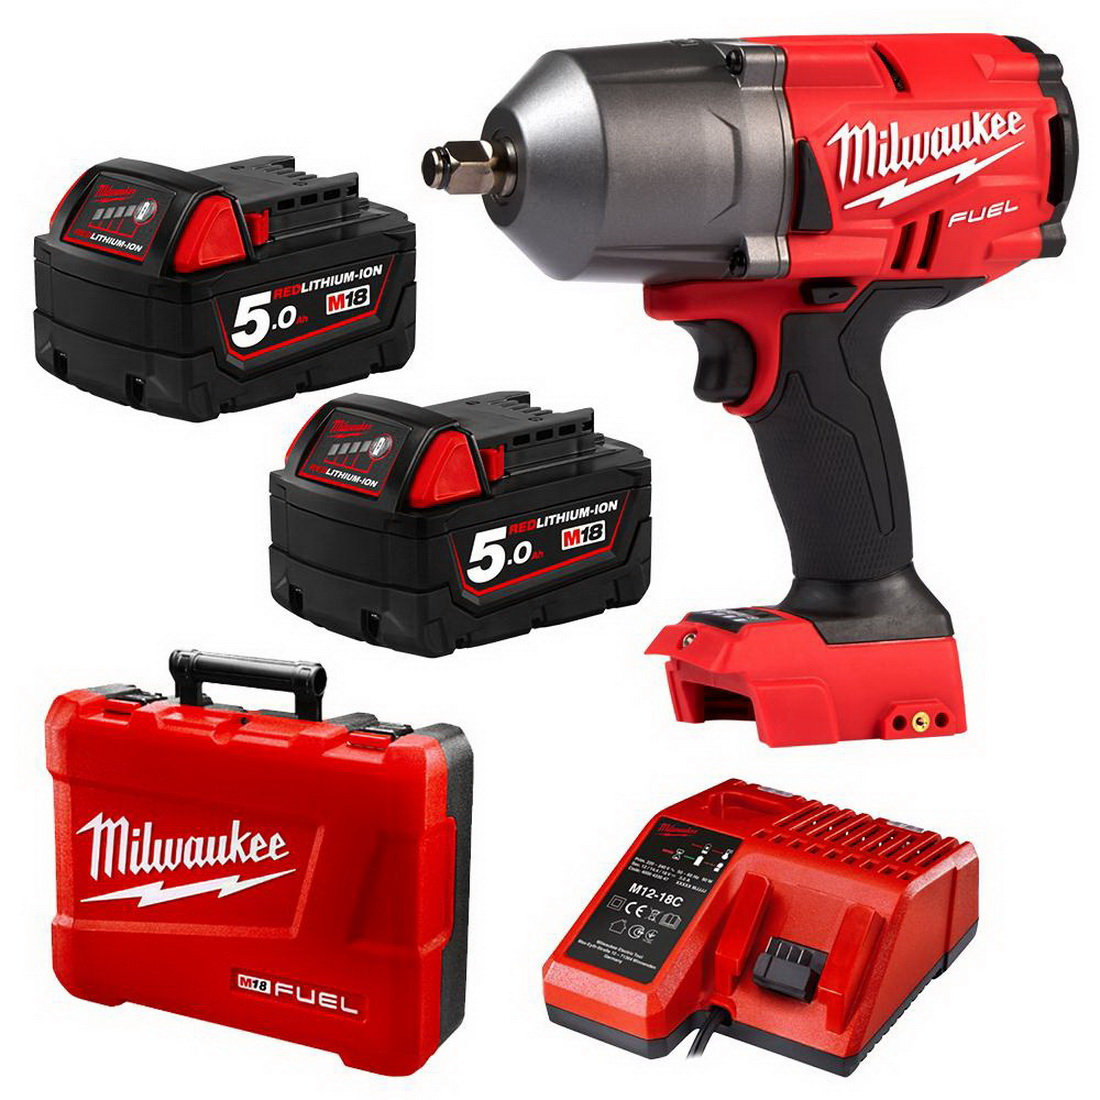 M18 FUEL Li-Ion Cordless High Torque Impact Wrench Kit with Friction Ring 18V 1/2inch 0-2100ipm M18FHIWF12-502C